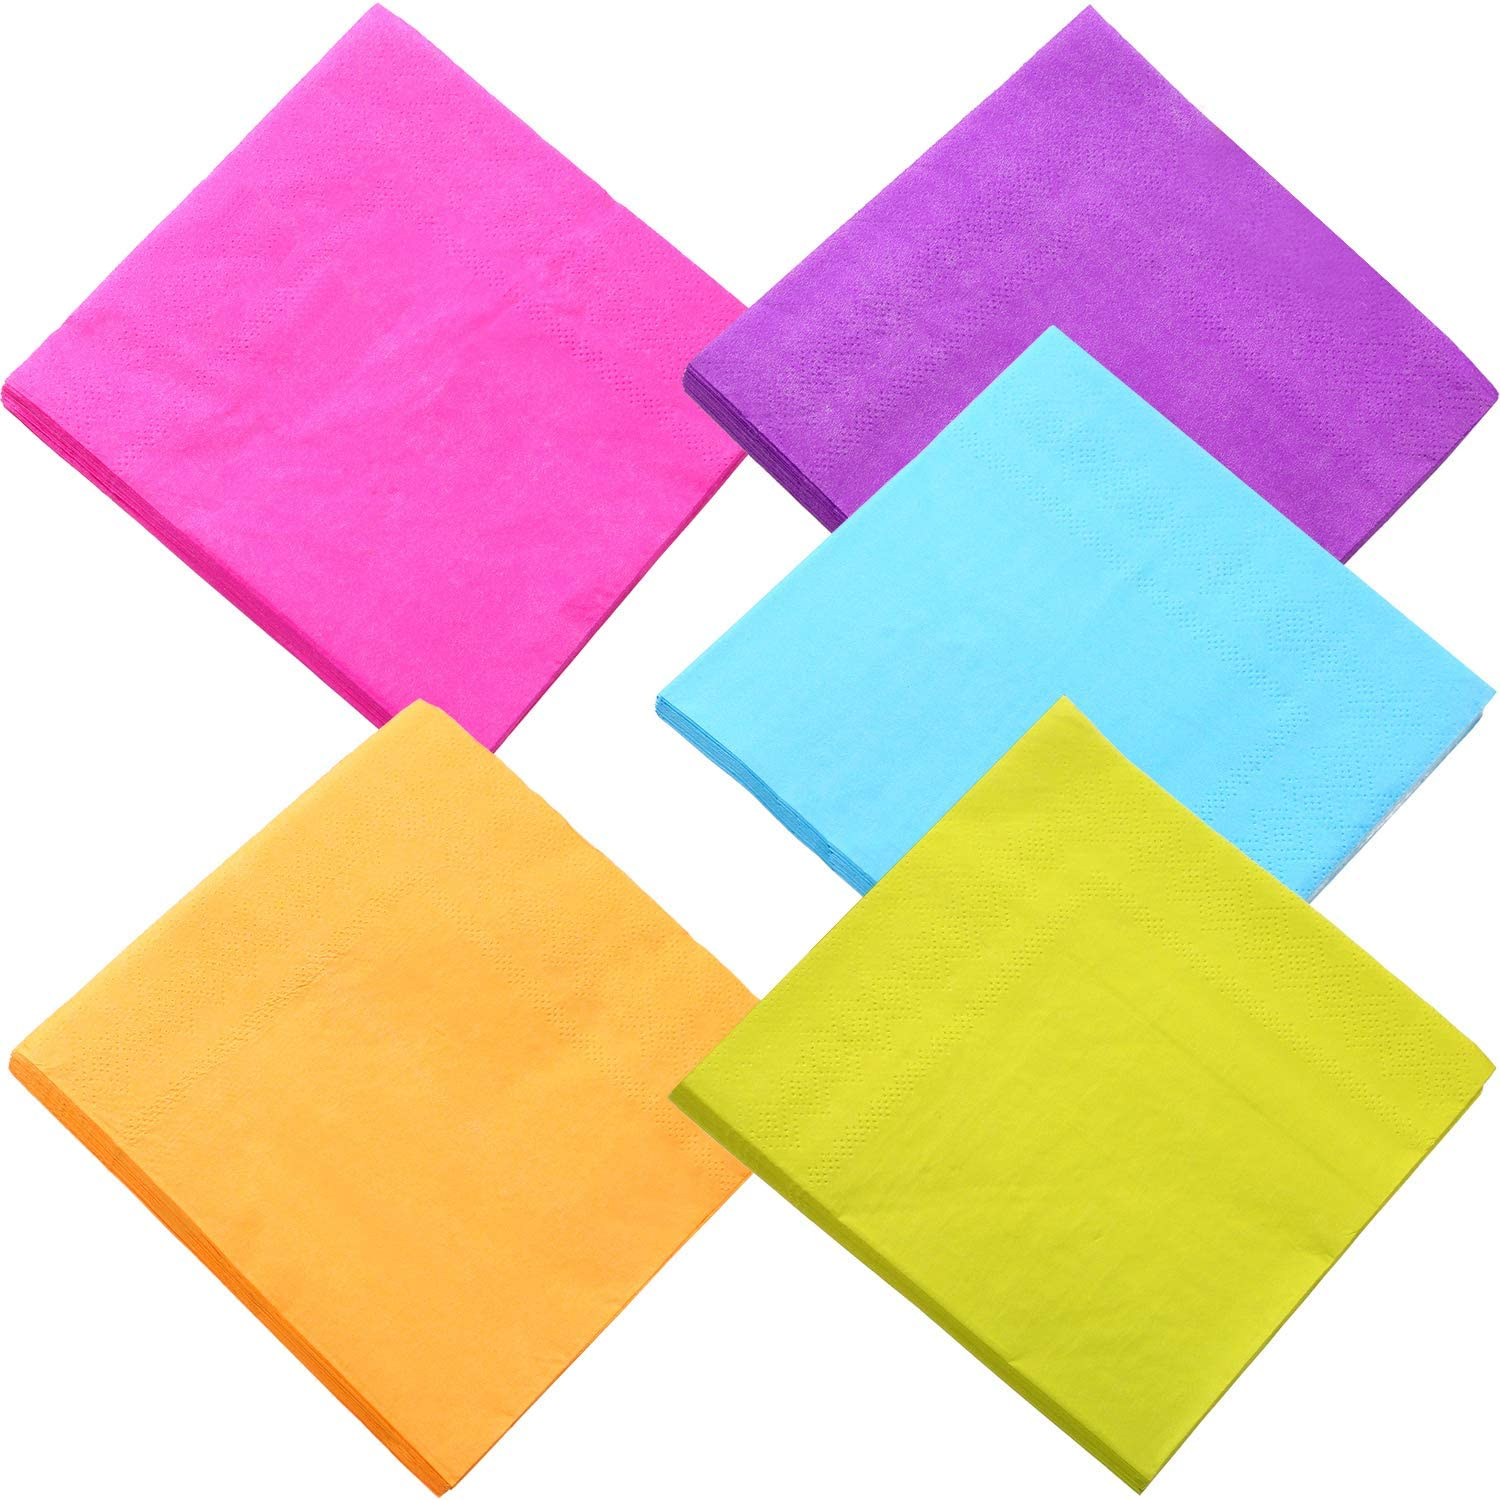 TecUnite 100 Pieces Beverage Paper Napkins Cocktail Napkin 2 Ply, Mixed Color